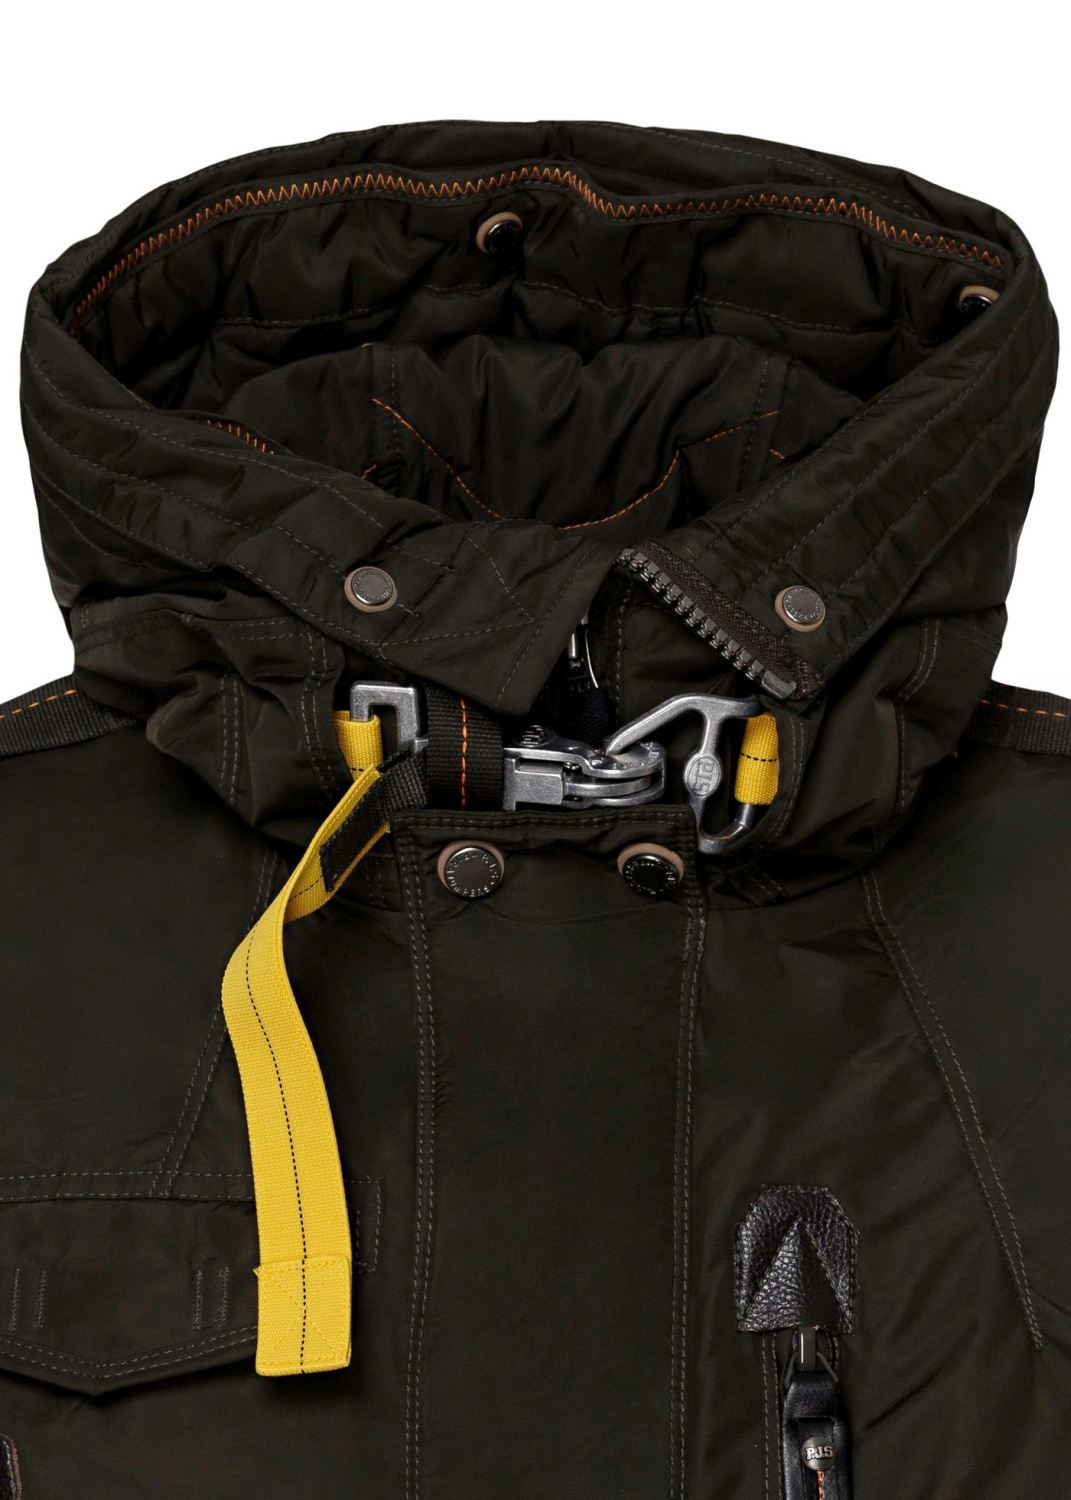 RIGHT HAND BASE - Fieldjacket image number 2